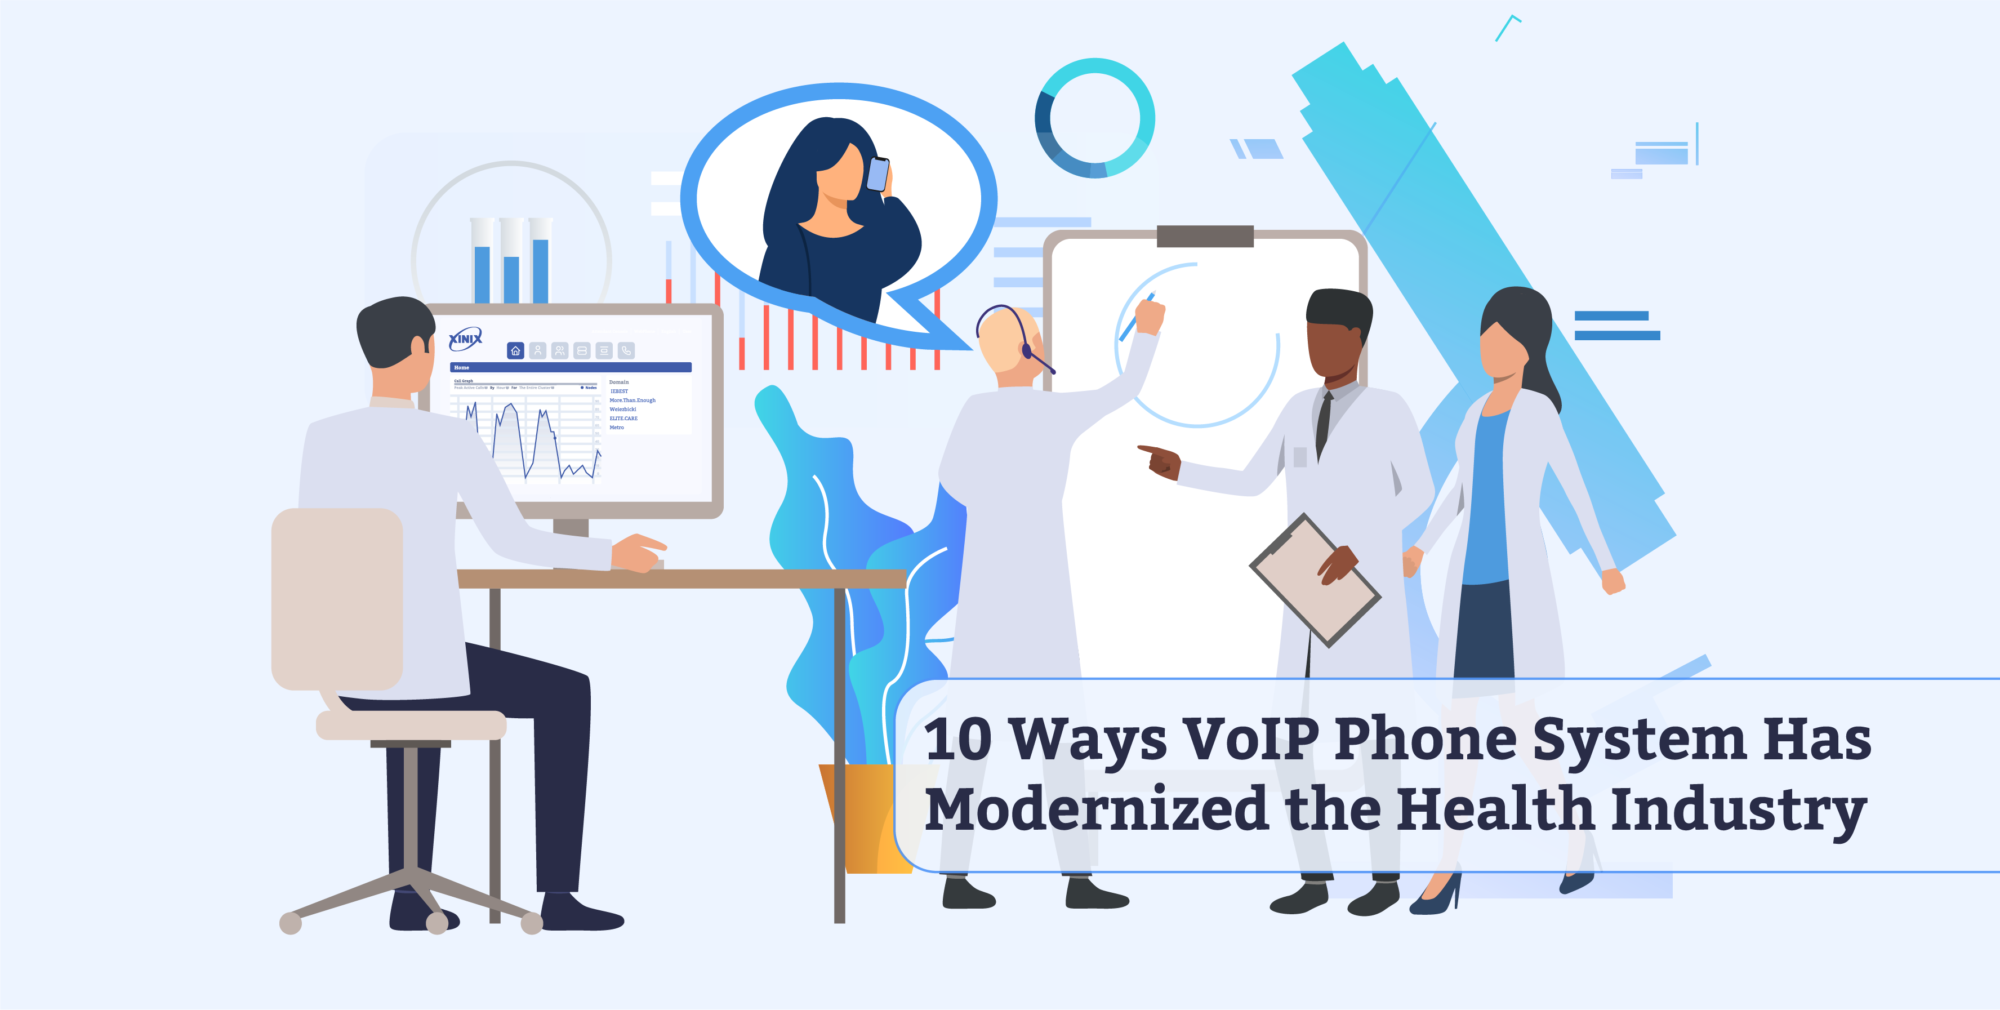 10 Ways VoIP Phone System Has Modernized the Health Industry